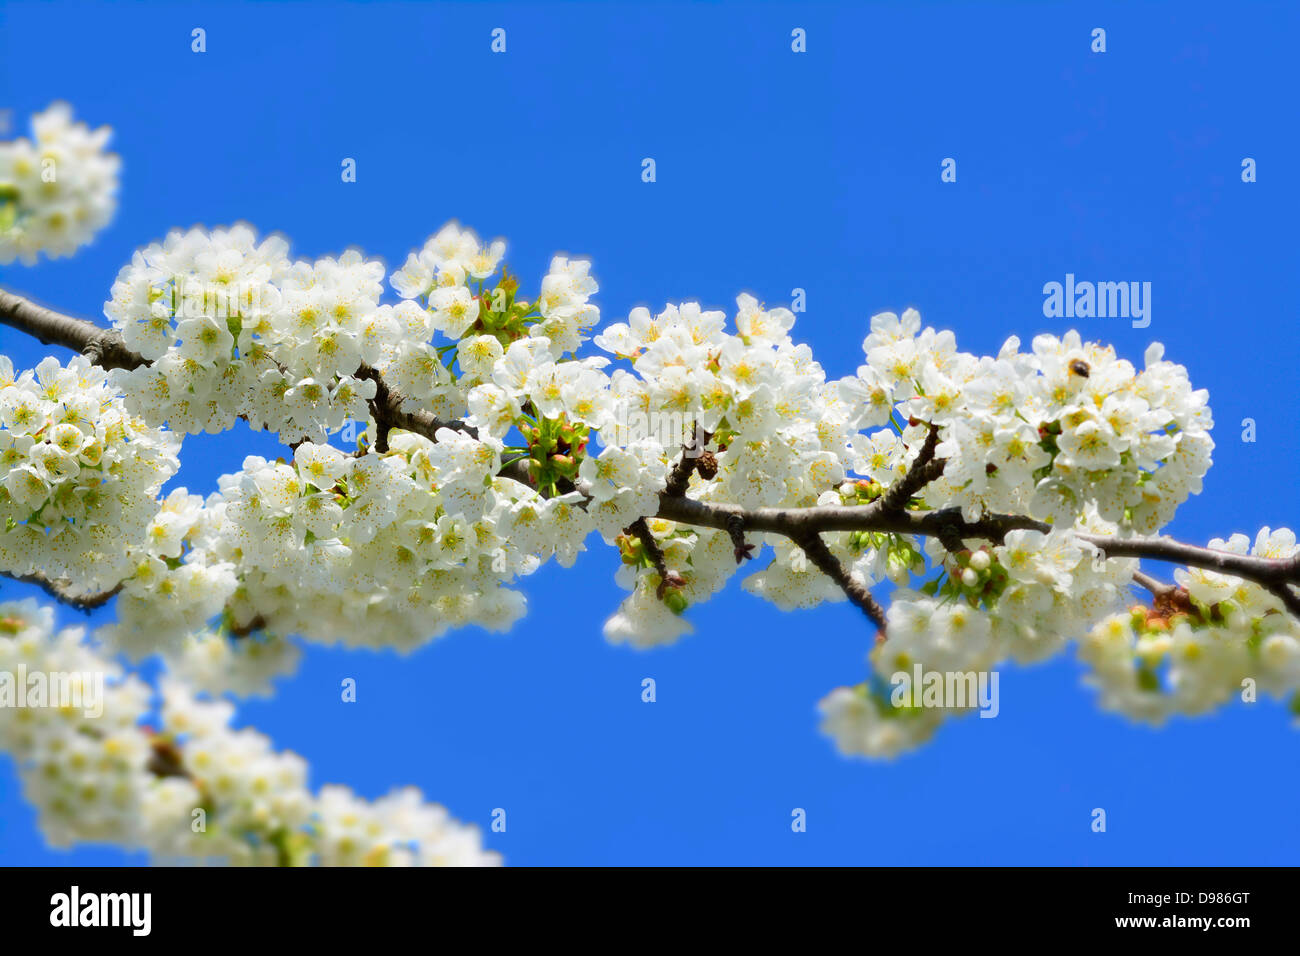 Apple Blossom tree in Spring Photo Stock